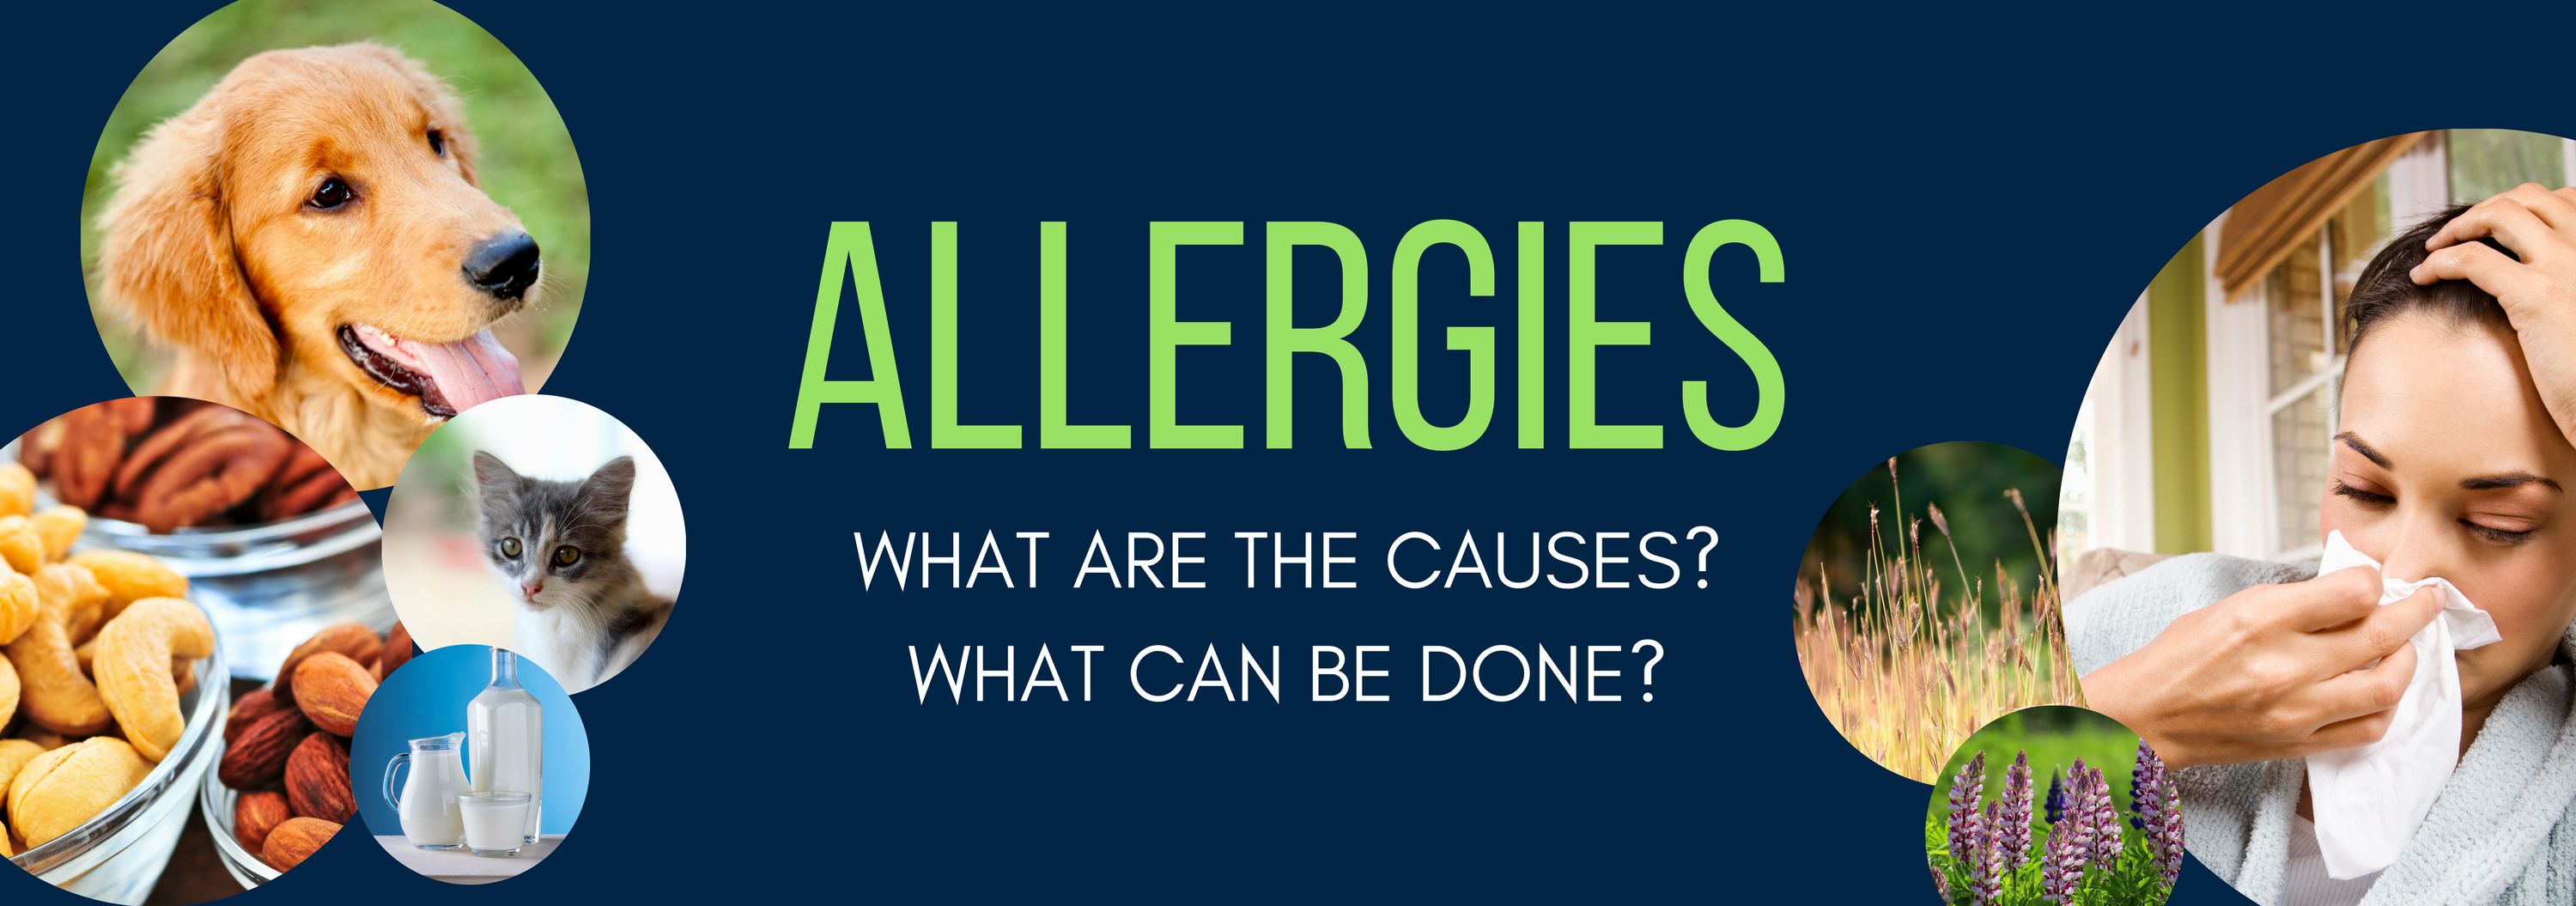 Different forms of allergens